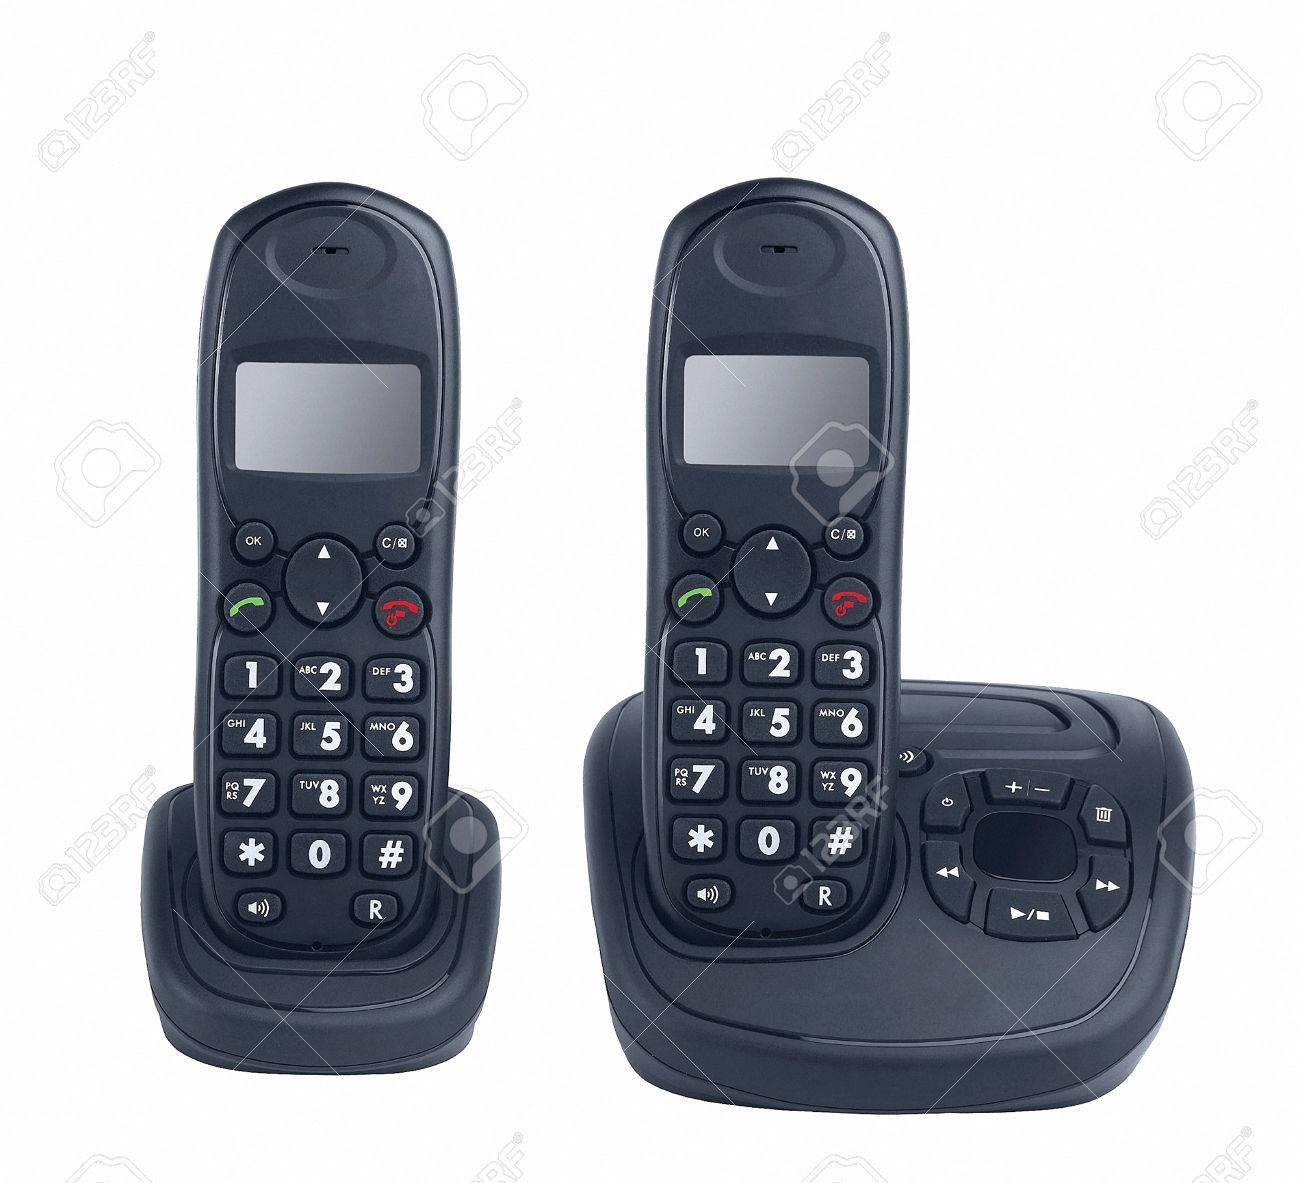 35 Designer Cordless Home Phones Surprising Contemporary Best Idea Home.